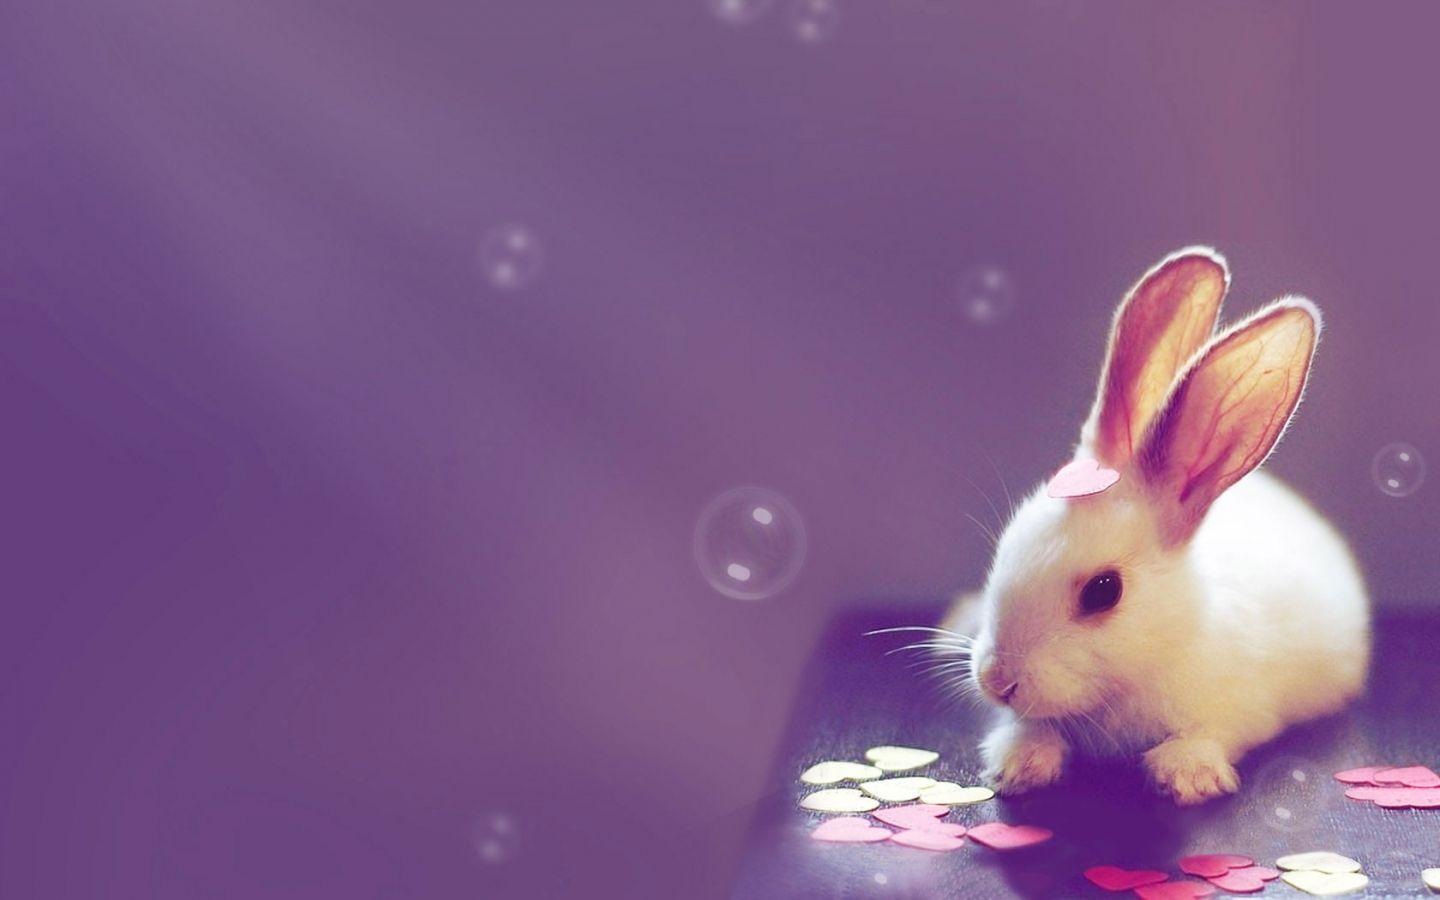 Wallpapers For > Cute Backgrounds For Desktop